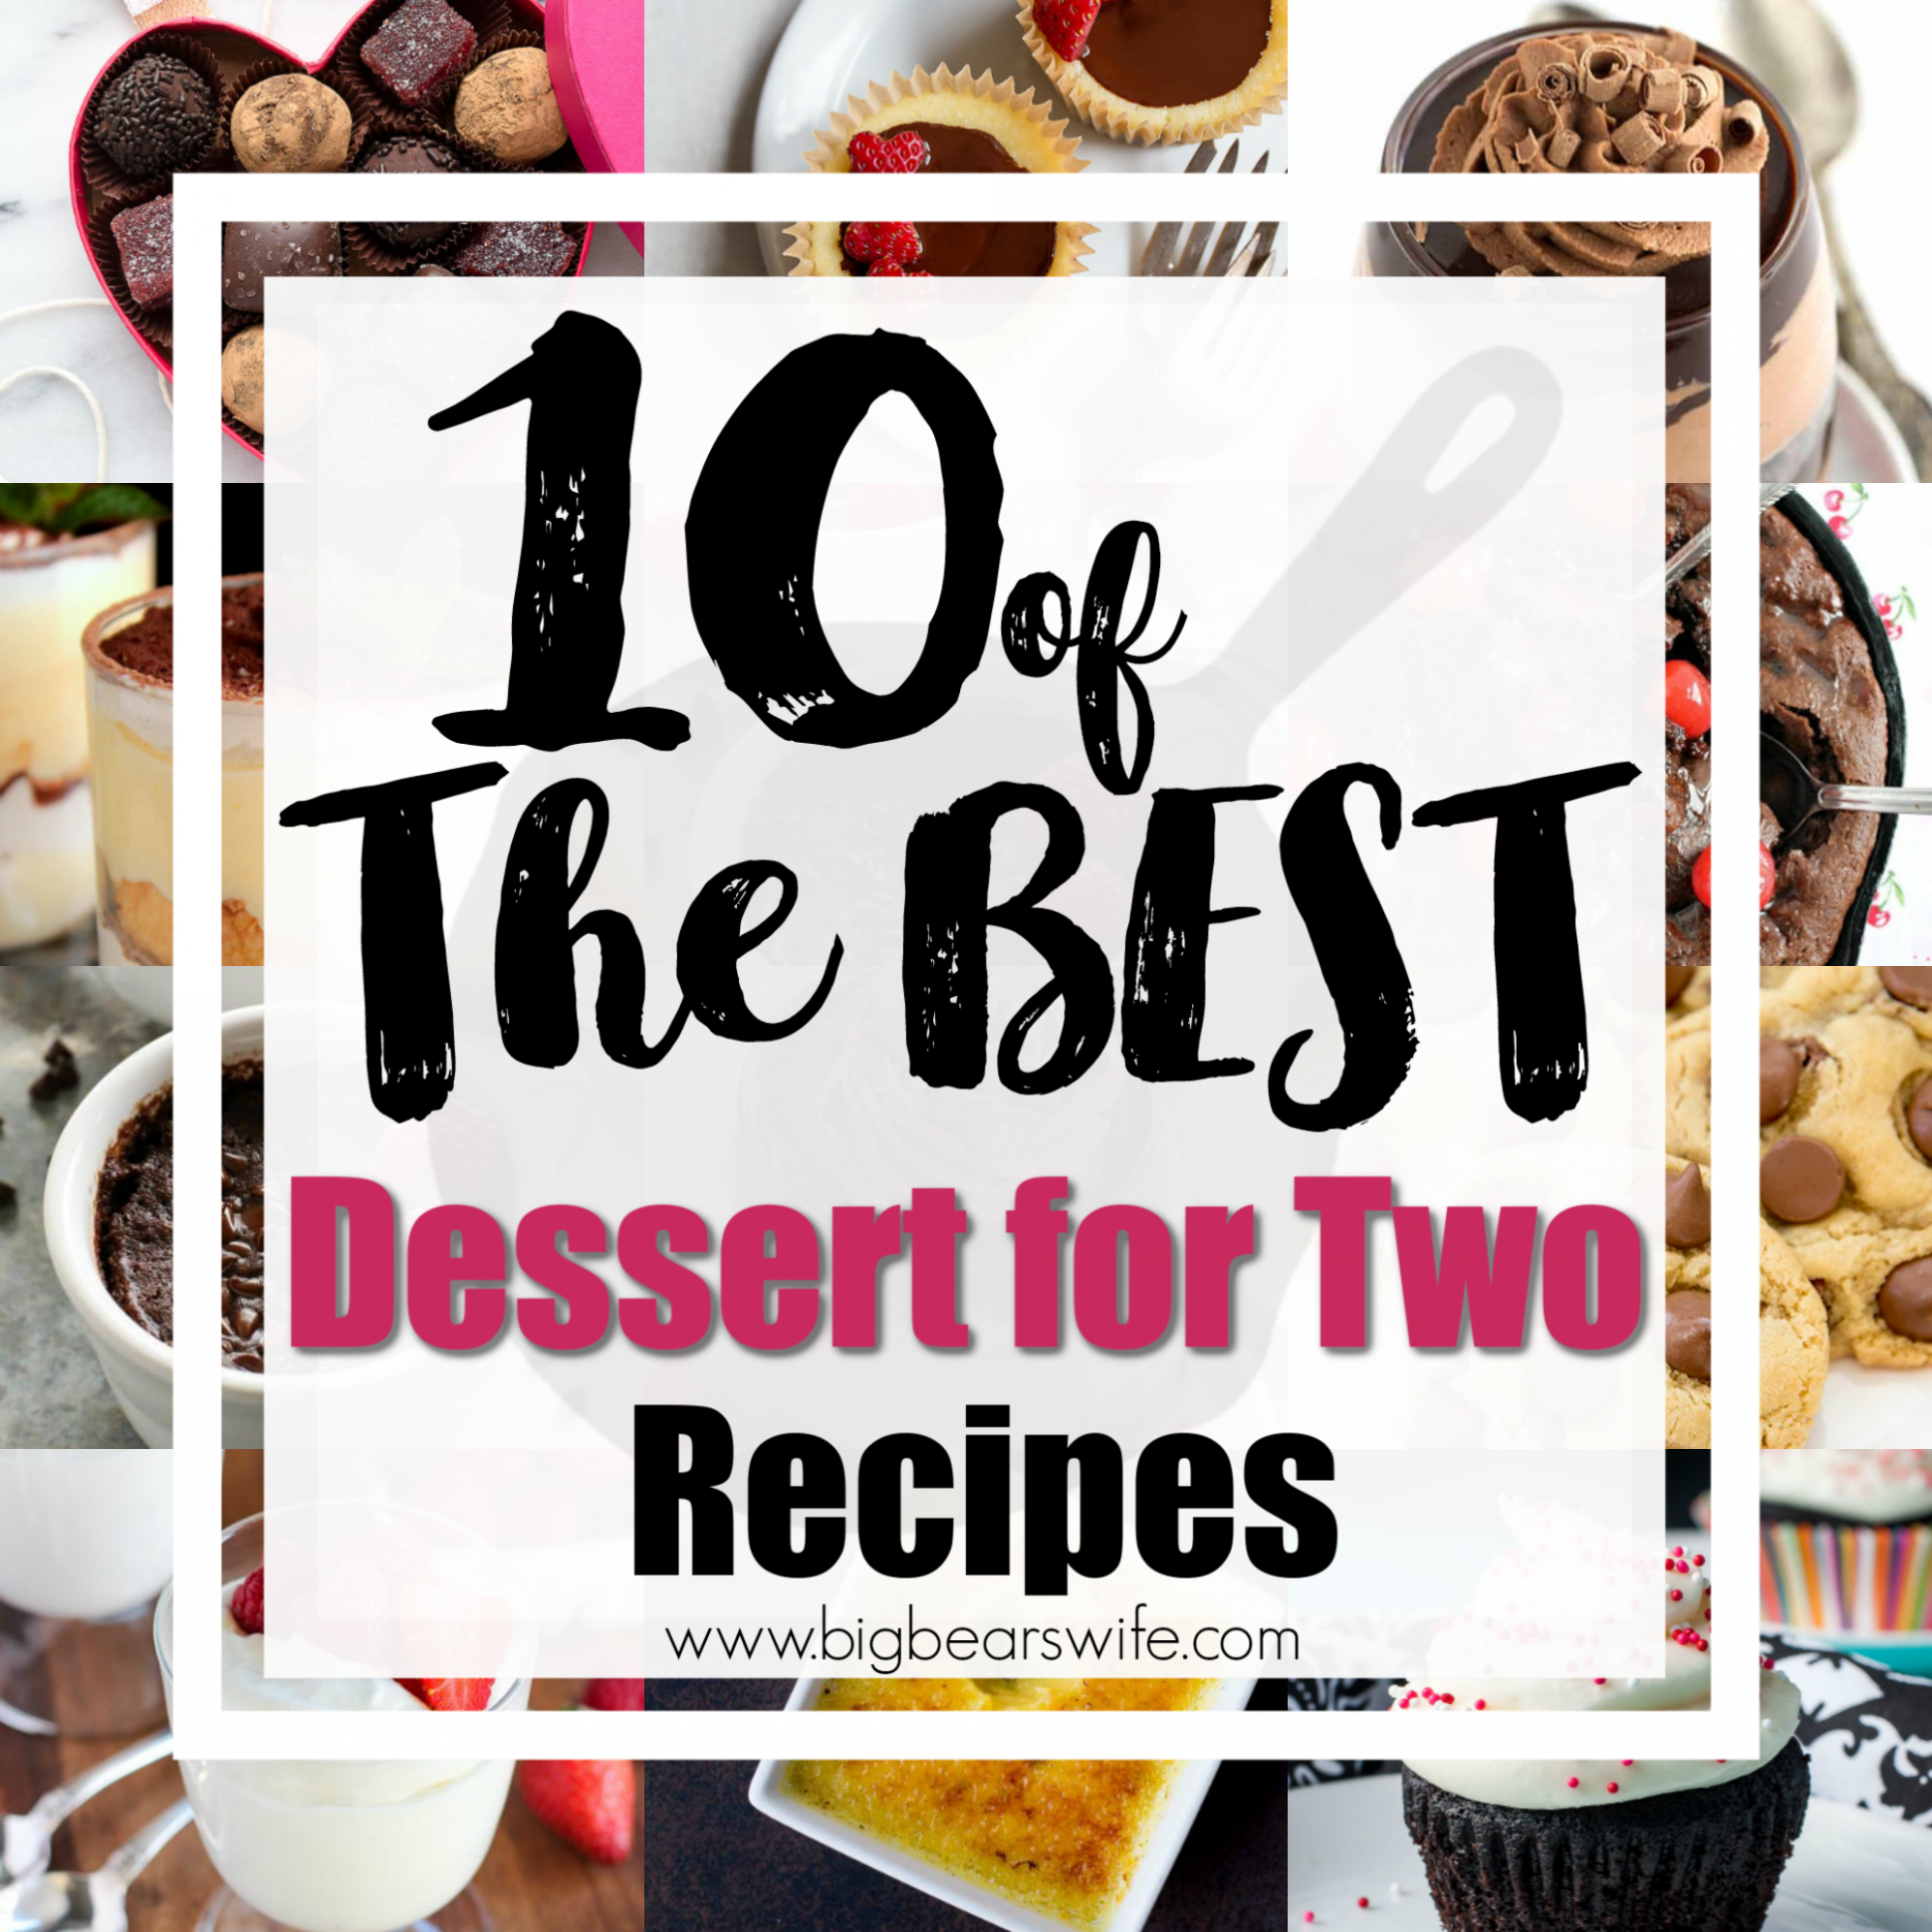 8 of the Best Desserts for Two - Big Bear's Wife